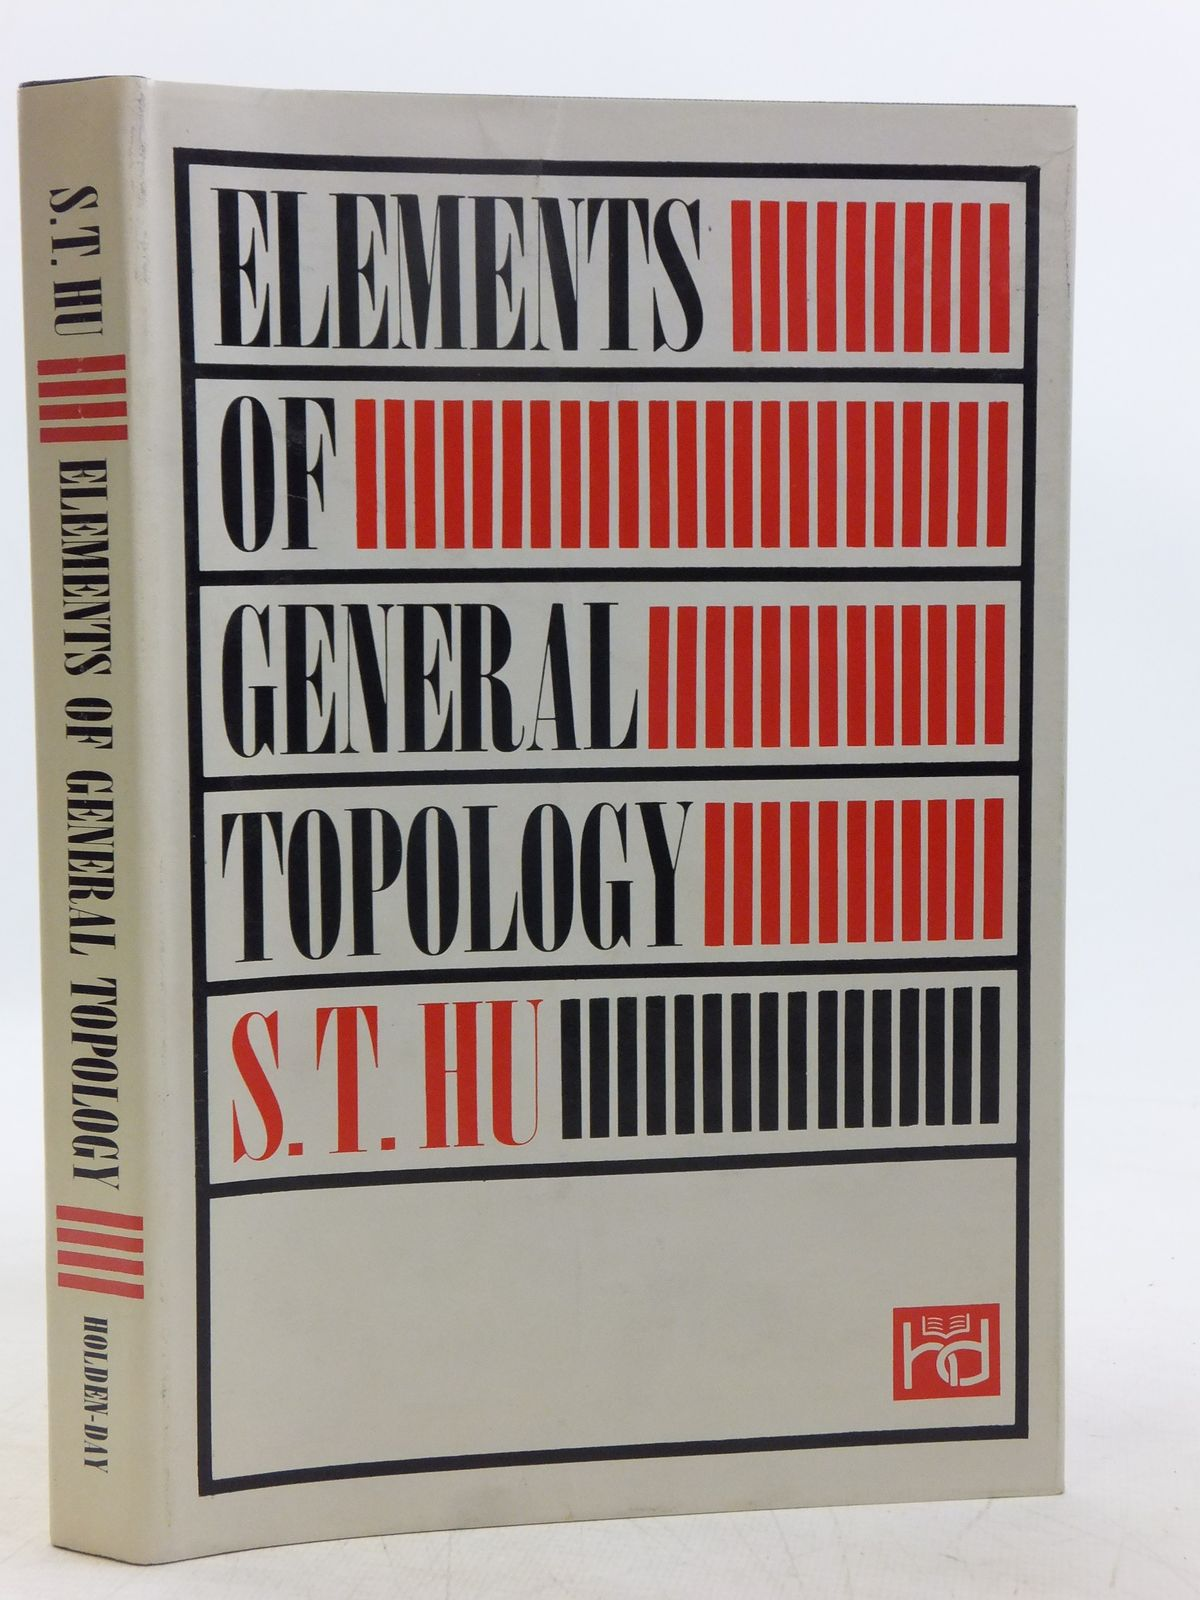 Photo of ELEMENTS OF GENERAL TOPOLOGY written by Hu, Sze-Tsen published by Holden-Day (STOCK CODE: 2119130)  for sale by Stella & Rose's Books